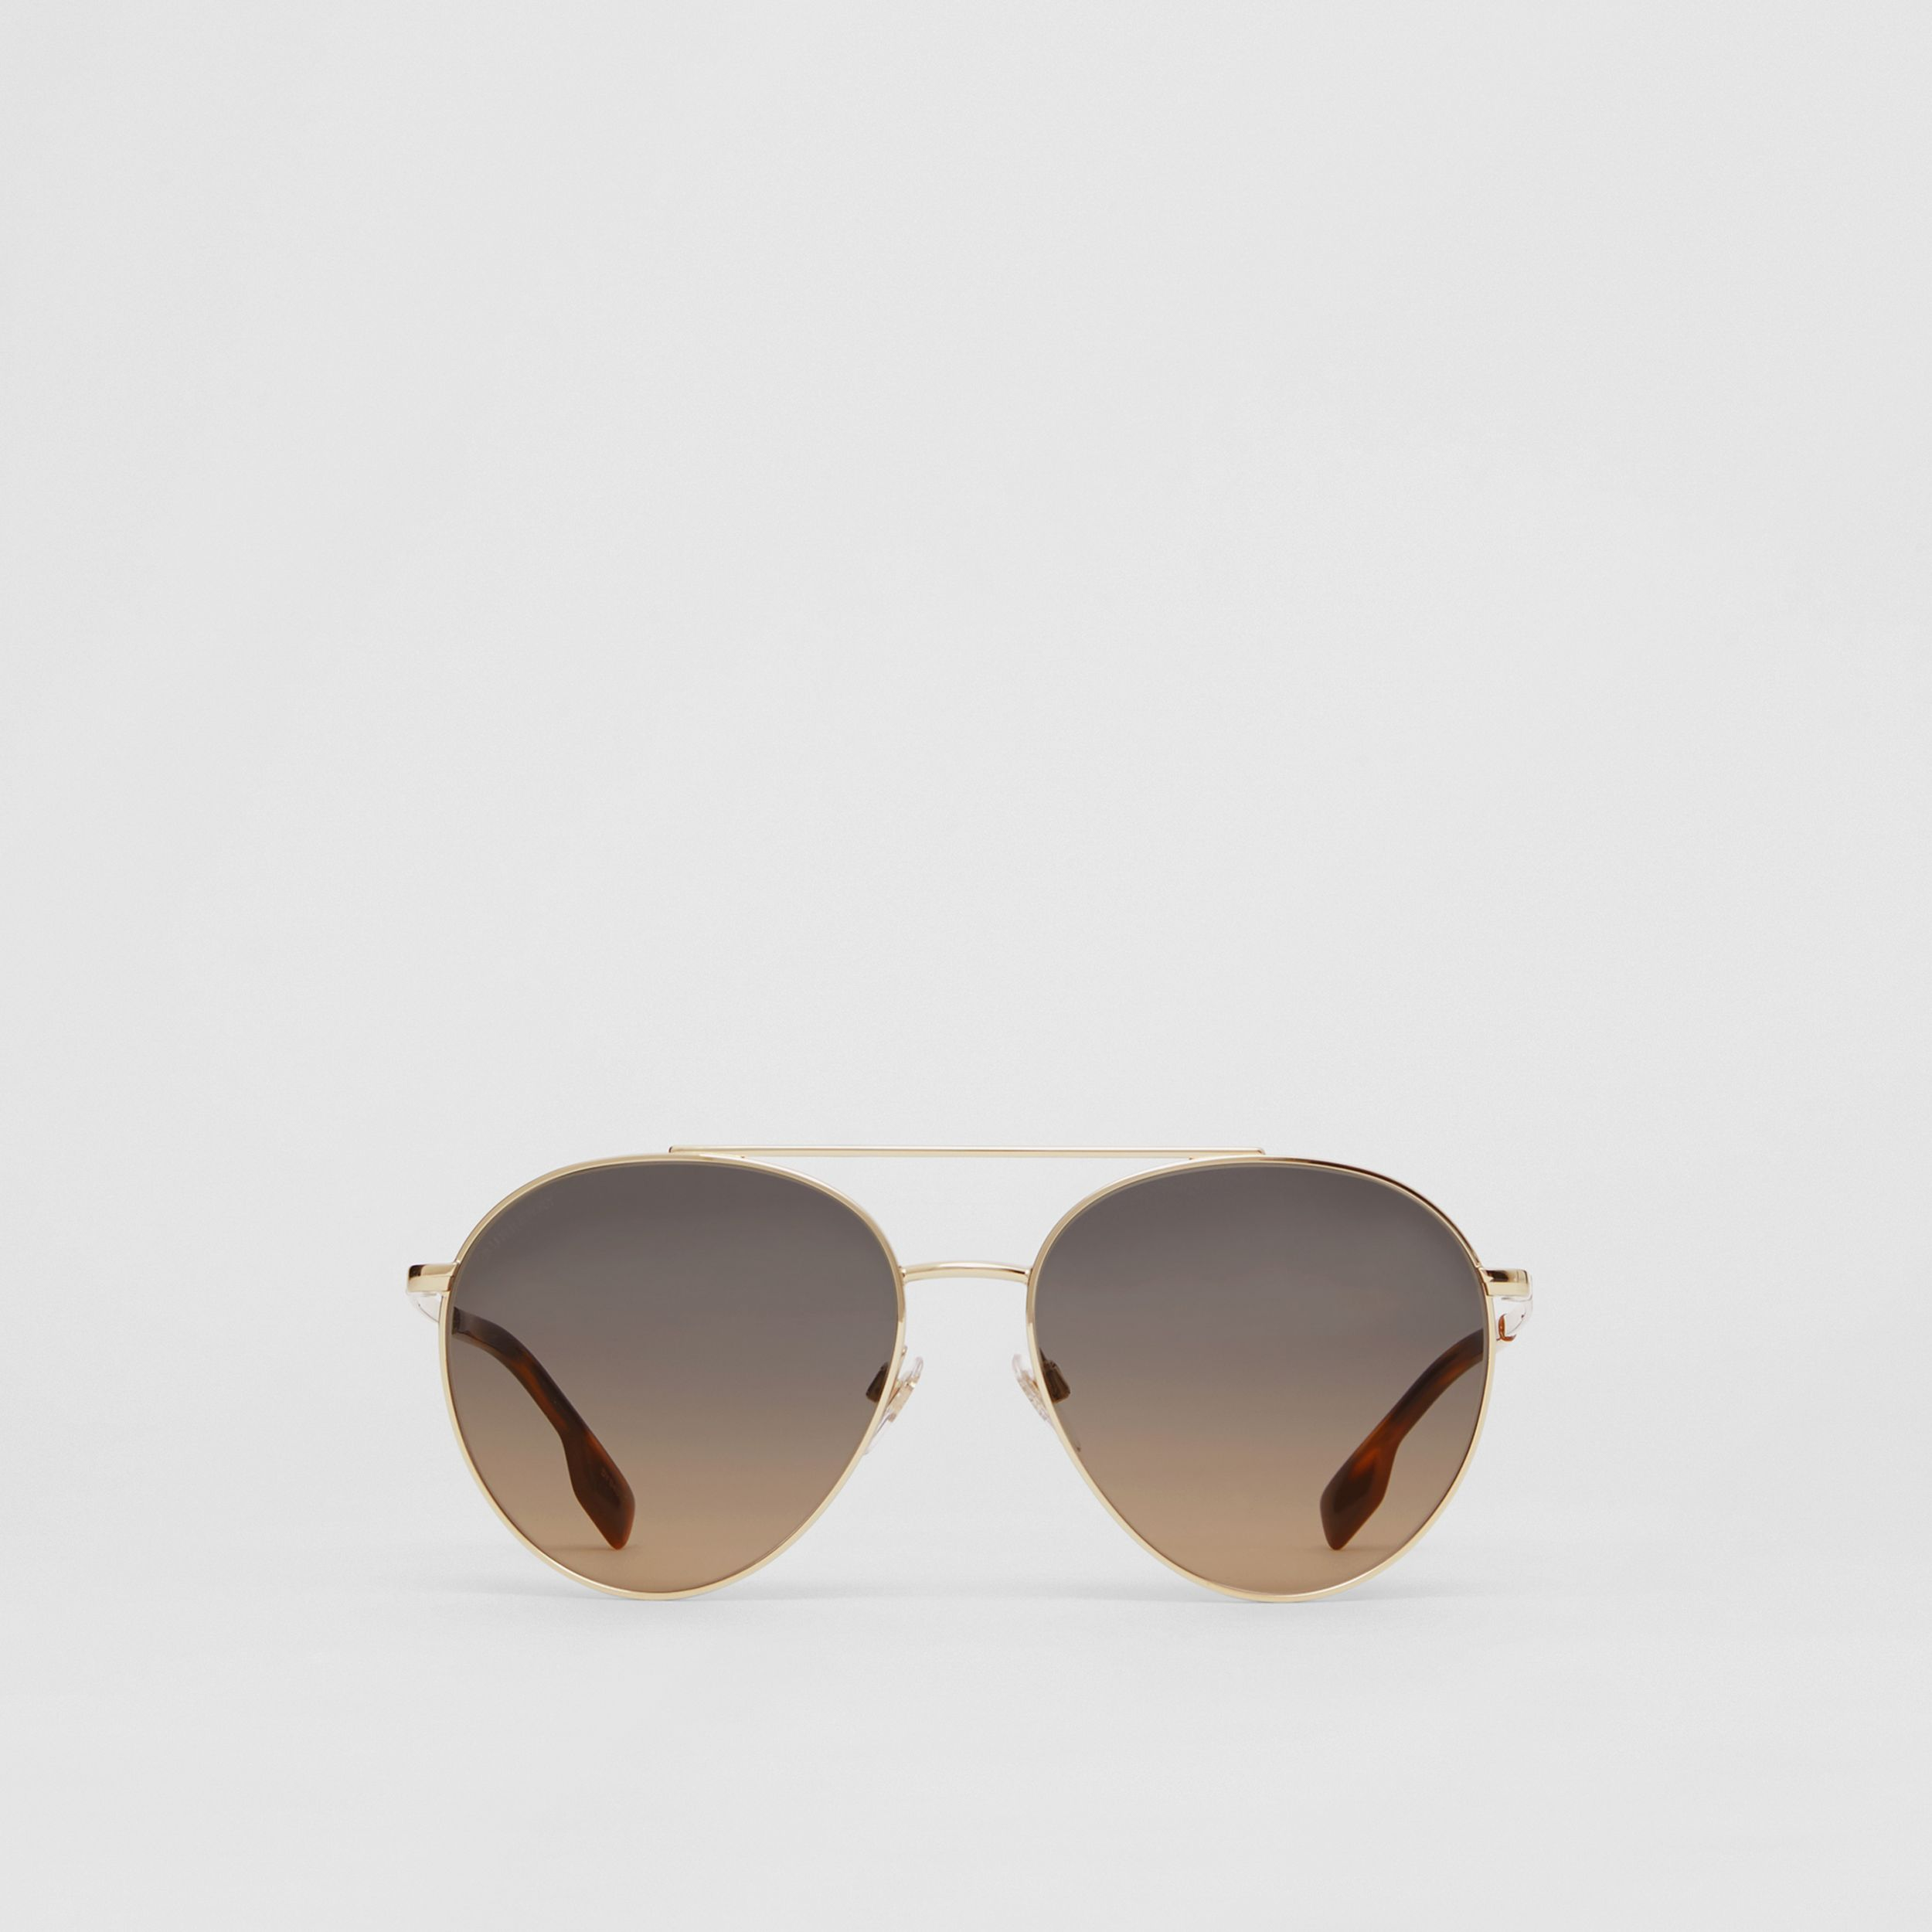 Pilot Sunglasses in Brown - Women | Burberry Singapore - 1